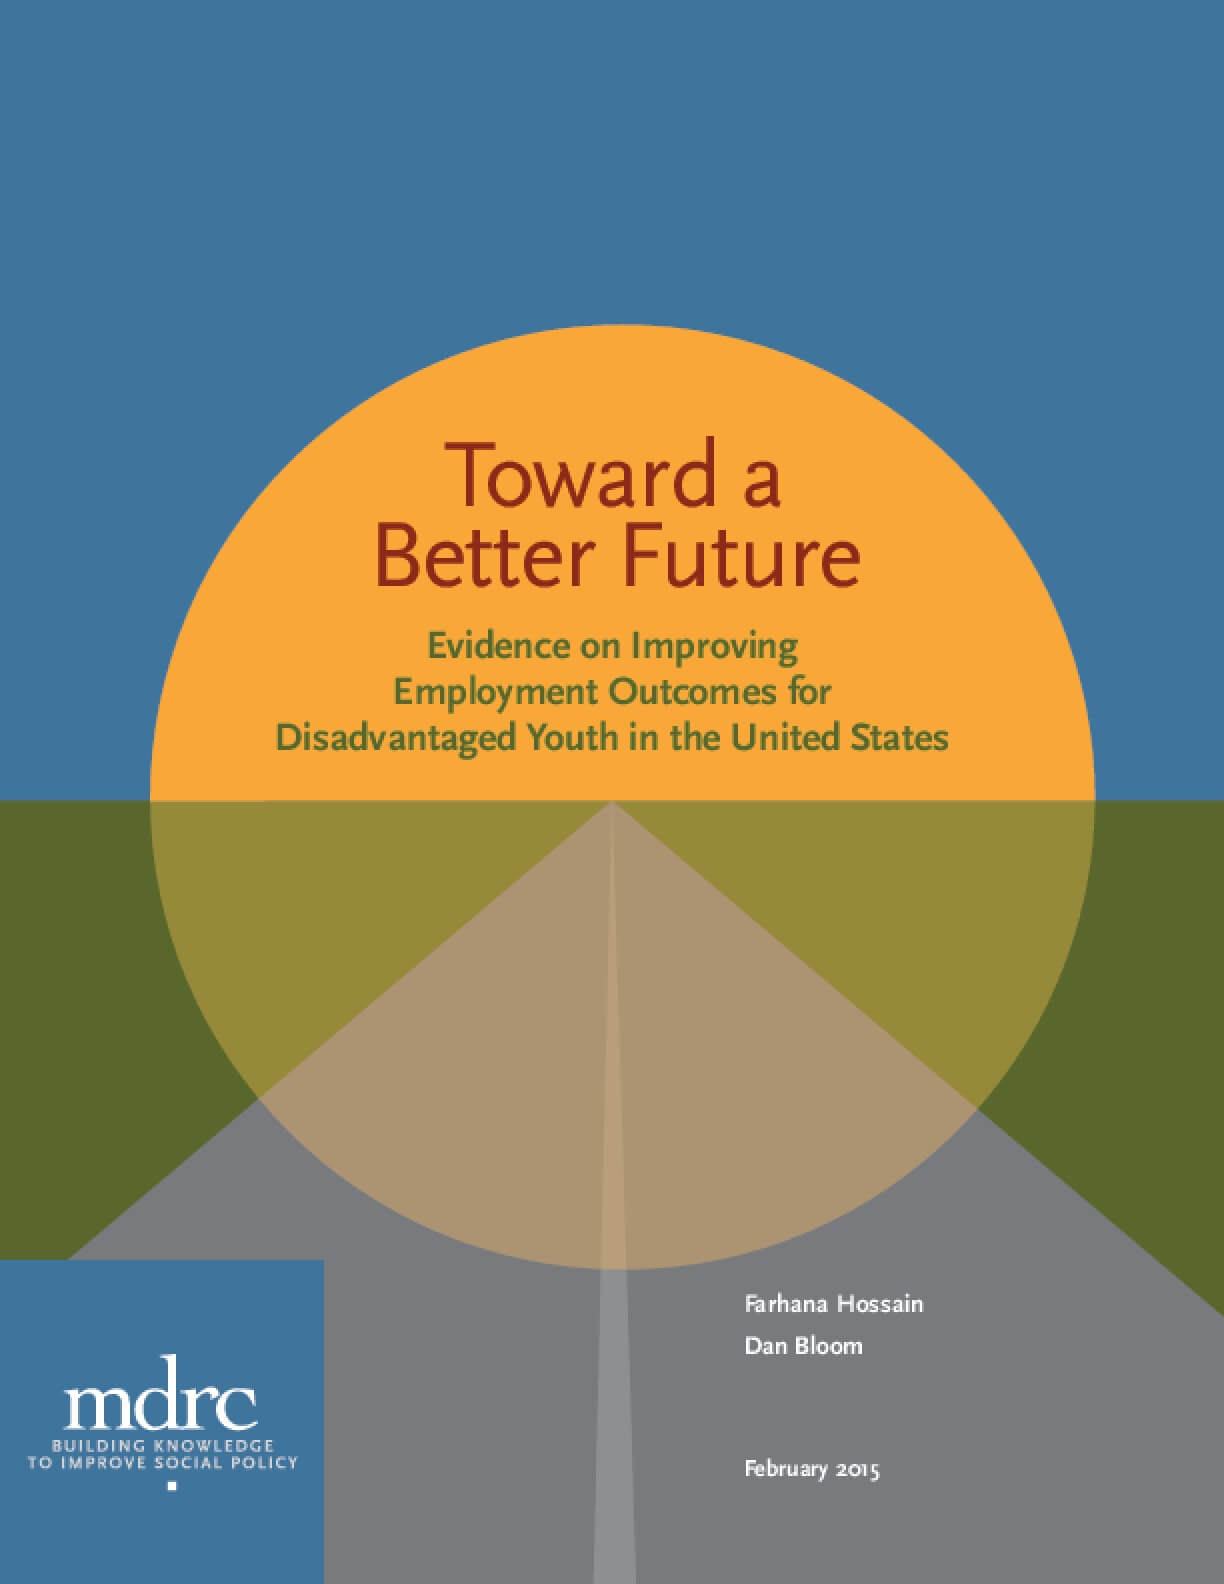 Toward a Better Future: Evidence on Improving Employment Outcomes for Disadvanged Youth in the United States